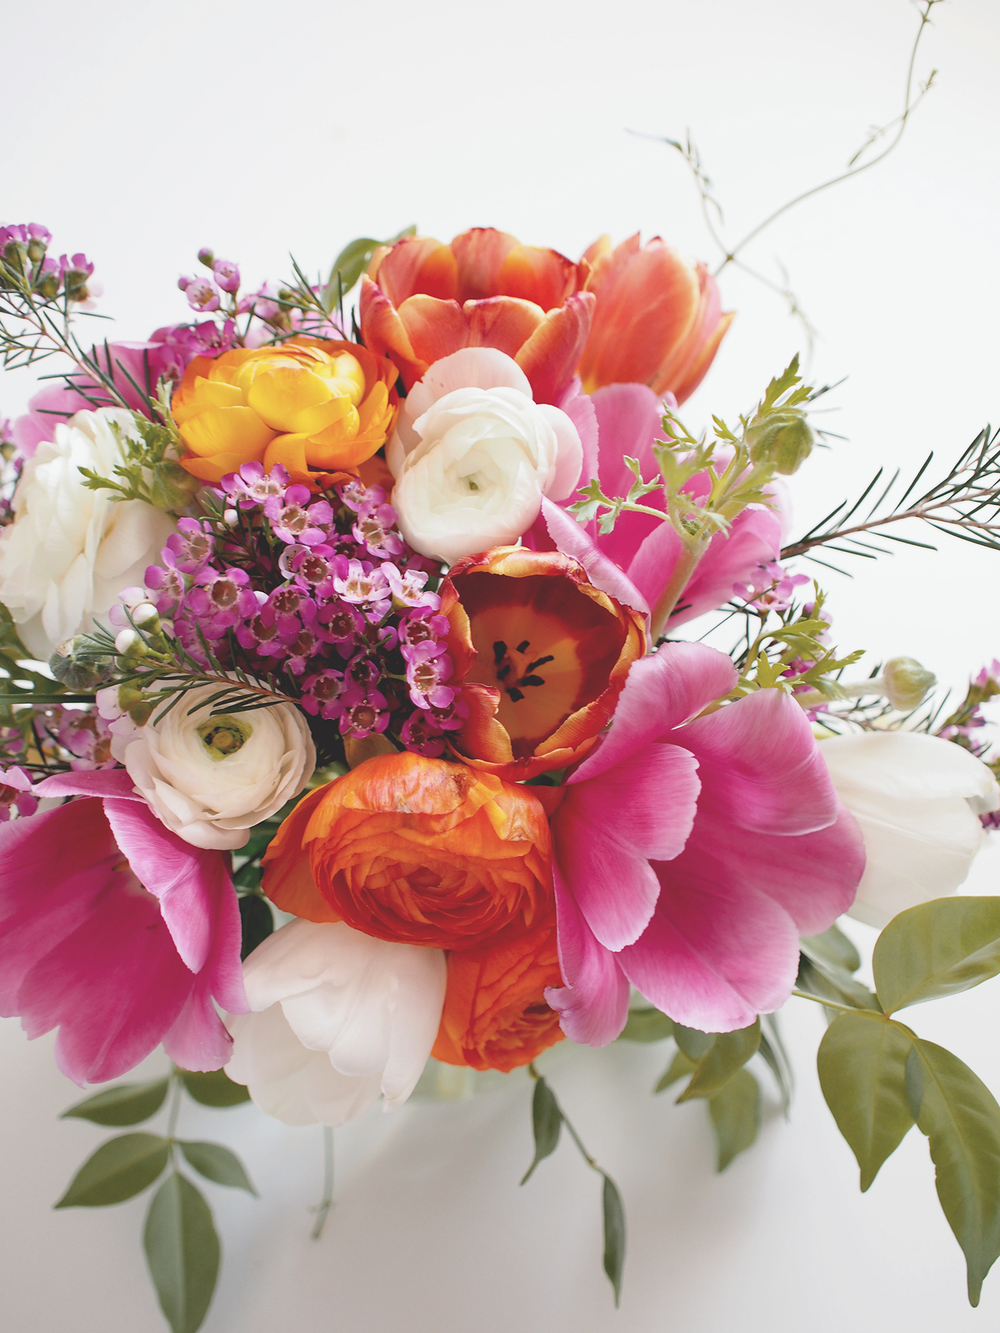 Spring flower arrangement made from grocery store blooms | A Fabulous Fete